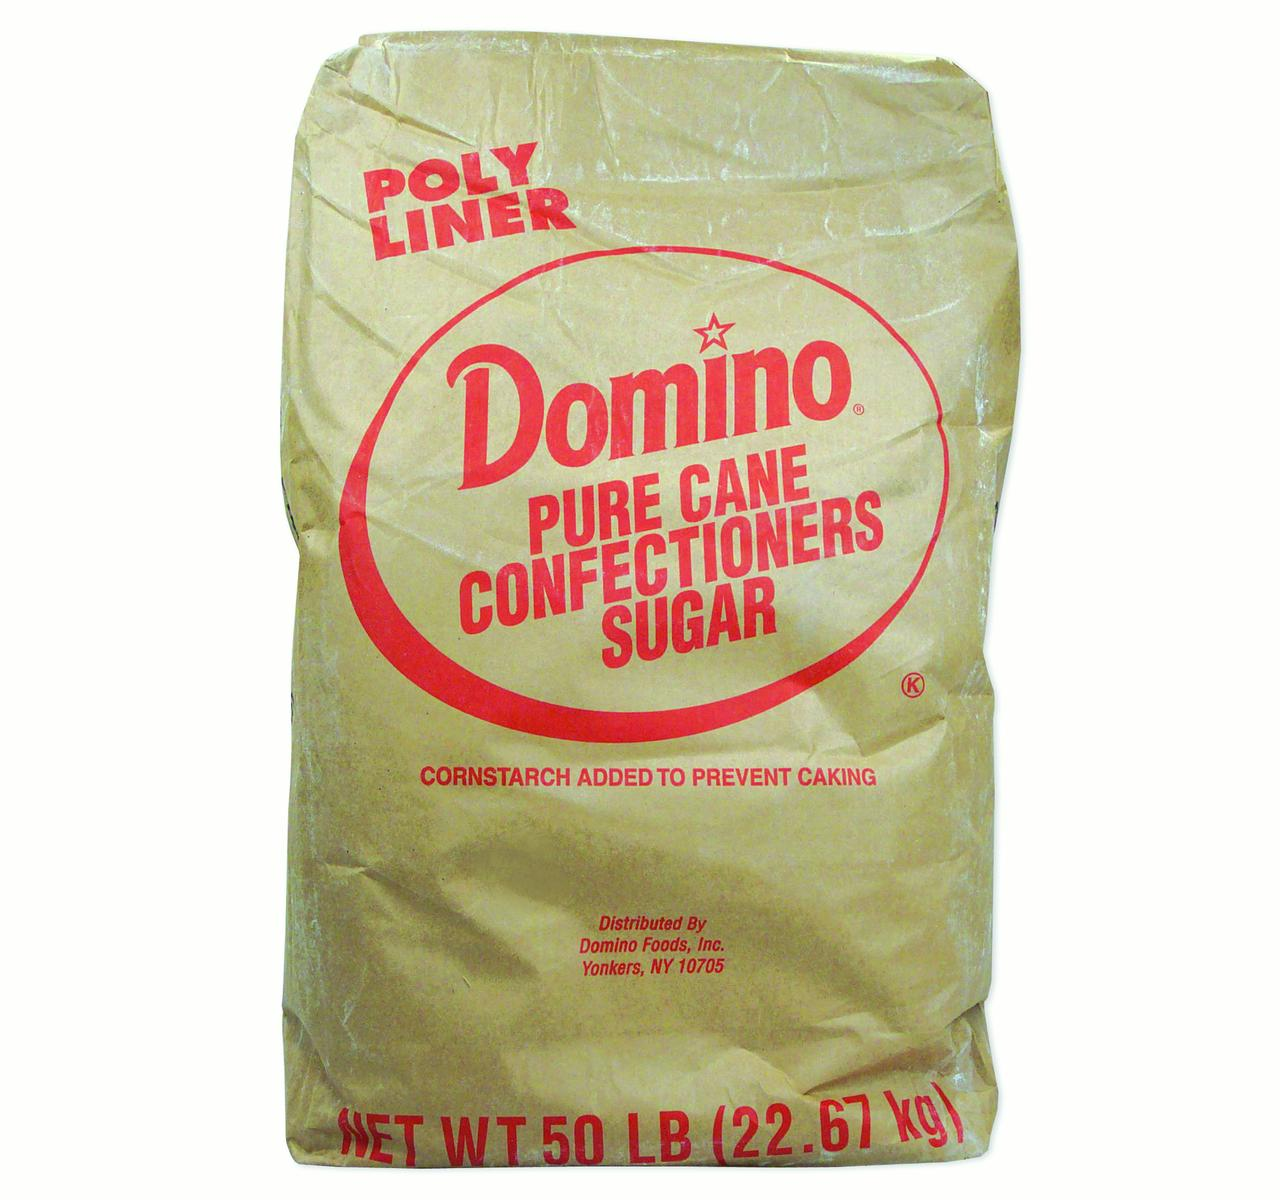 Domino 10X Pure Cane Confectioners Sugar 50 lb. Bag